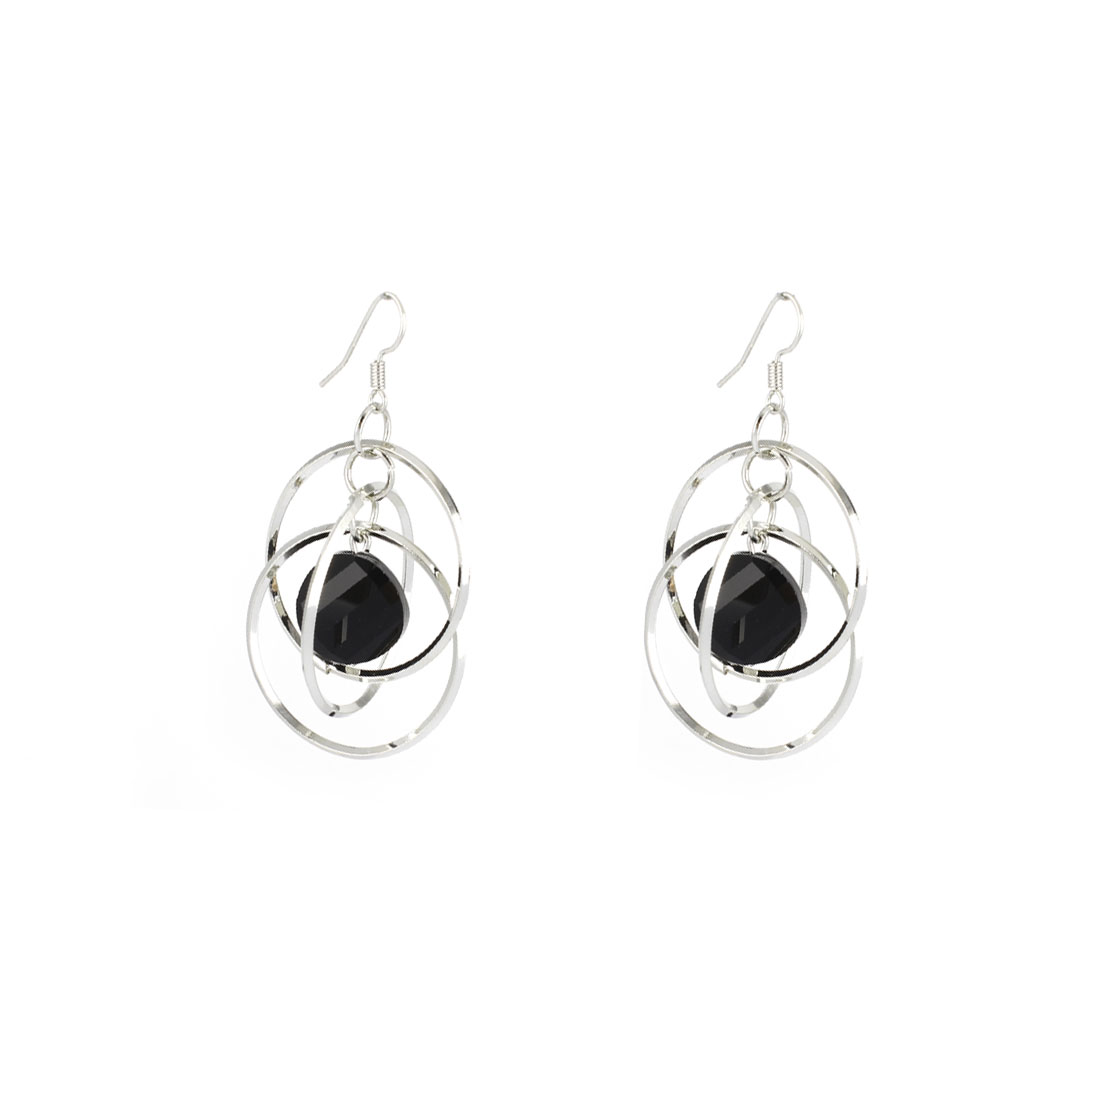 Silver Tone Metal 3 Layers 3cm Dia Ring Dangling Pendant Hook Earrings Pair for Lady